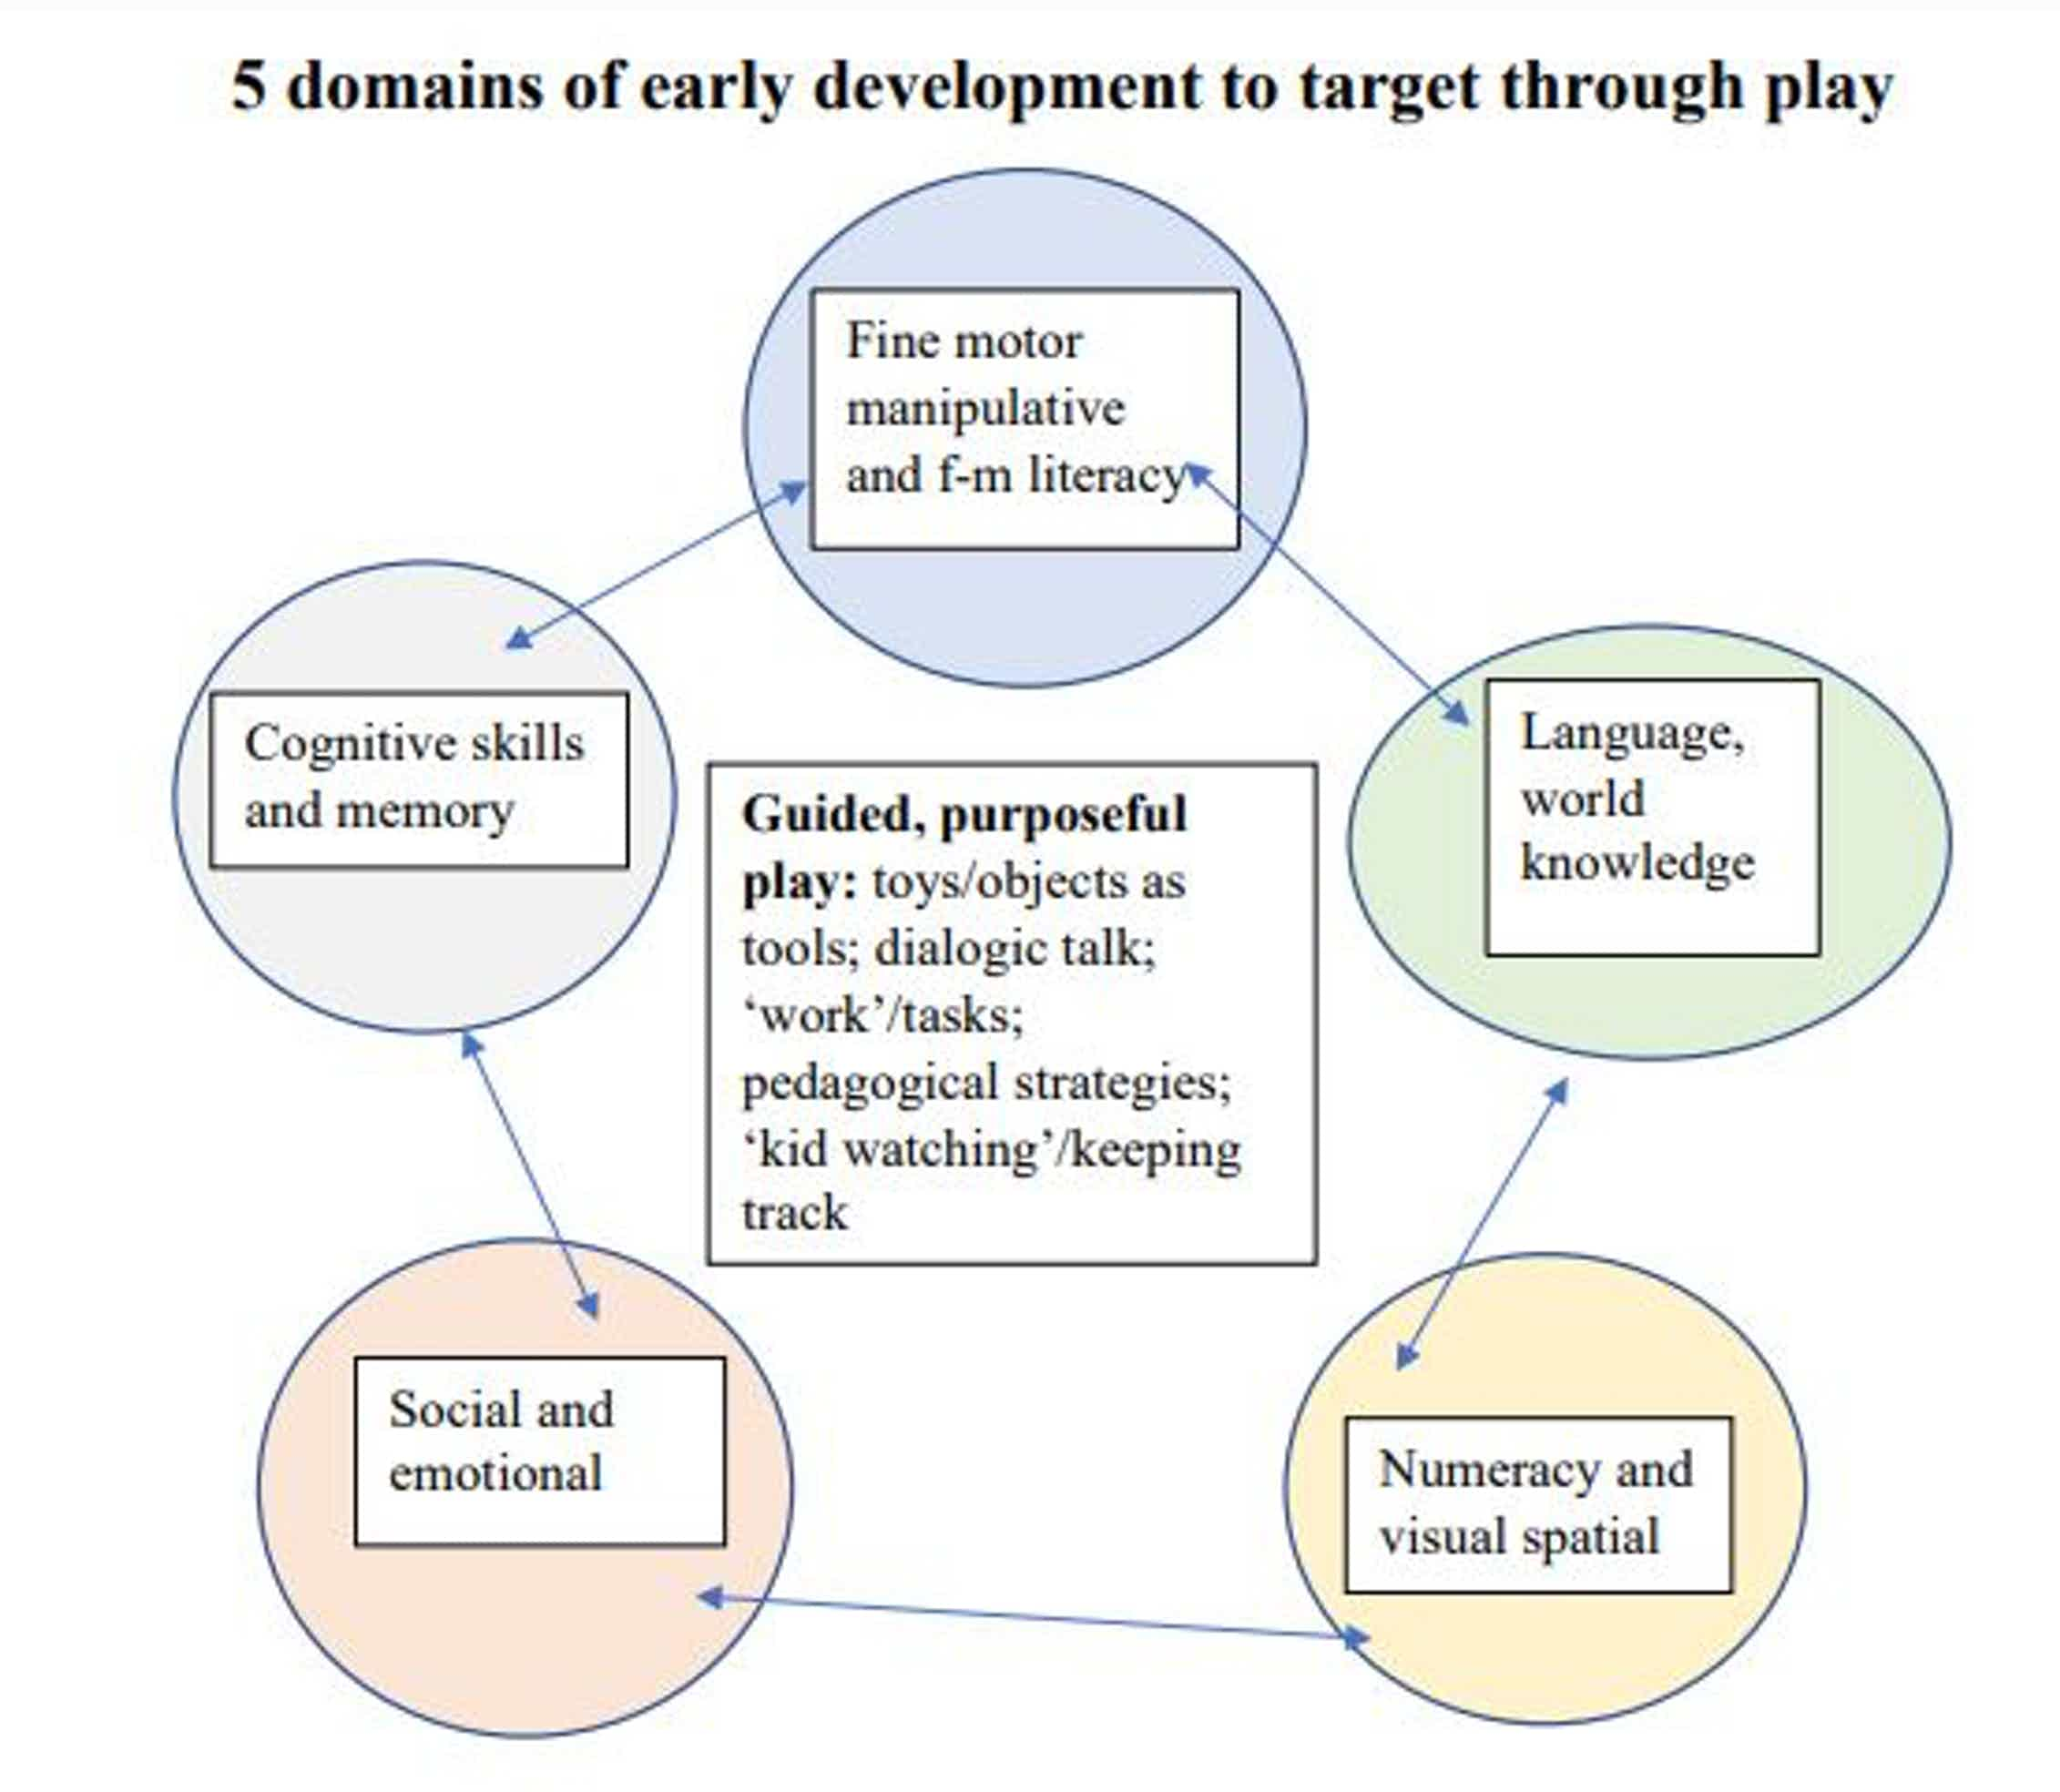 Chart showing different areas of child development including numeracy and spatial recognition; fine motor skills; language and word knowledge; cognitive skills and memory; social and emotional learning.